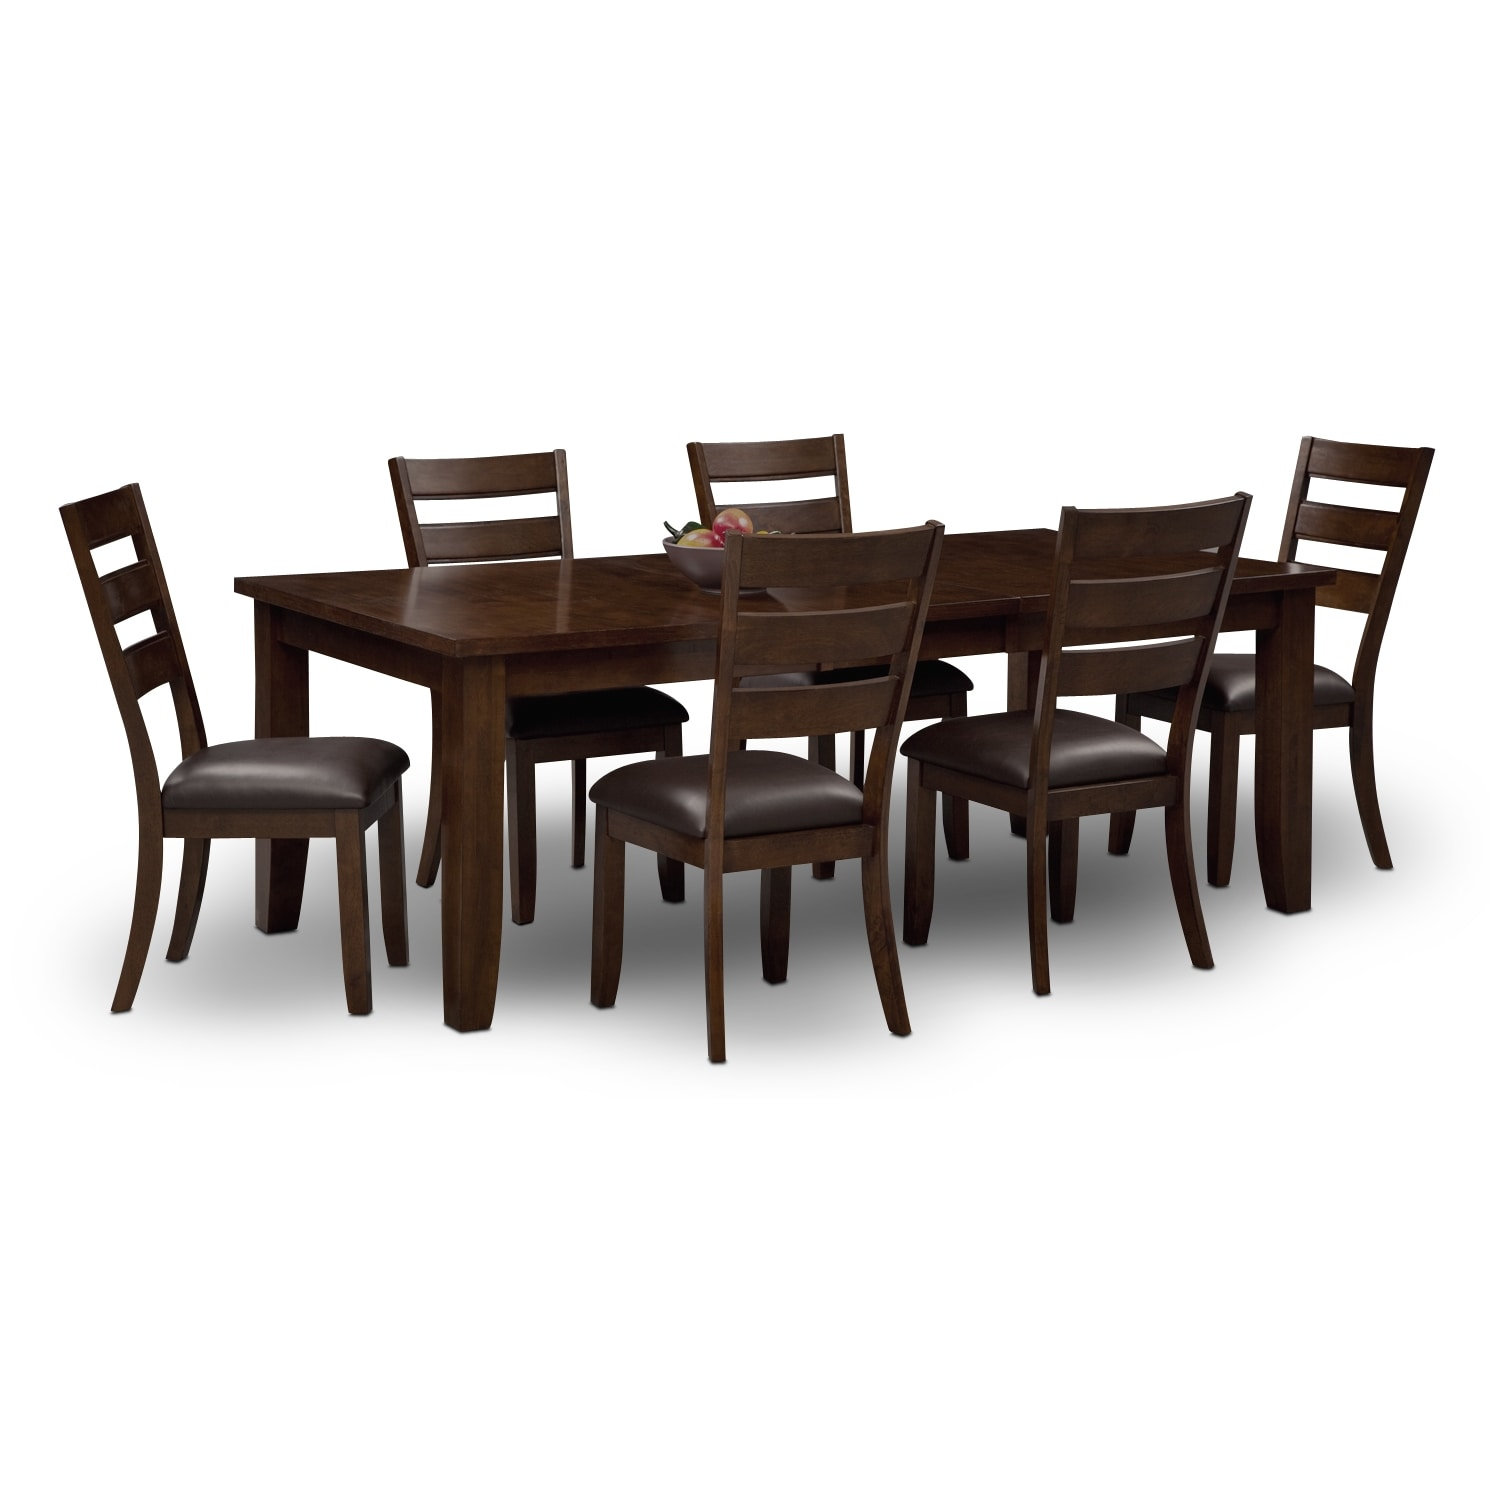 Dining Room Furniture - Abaco 7 Pc. Dining Room